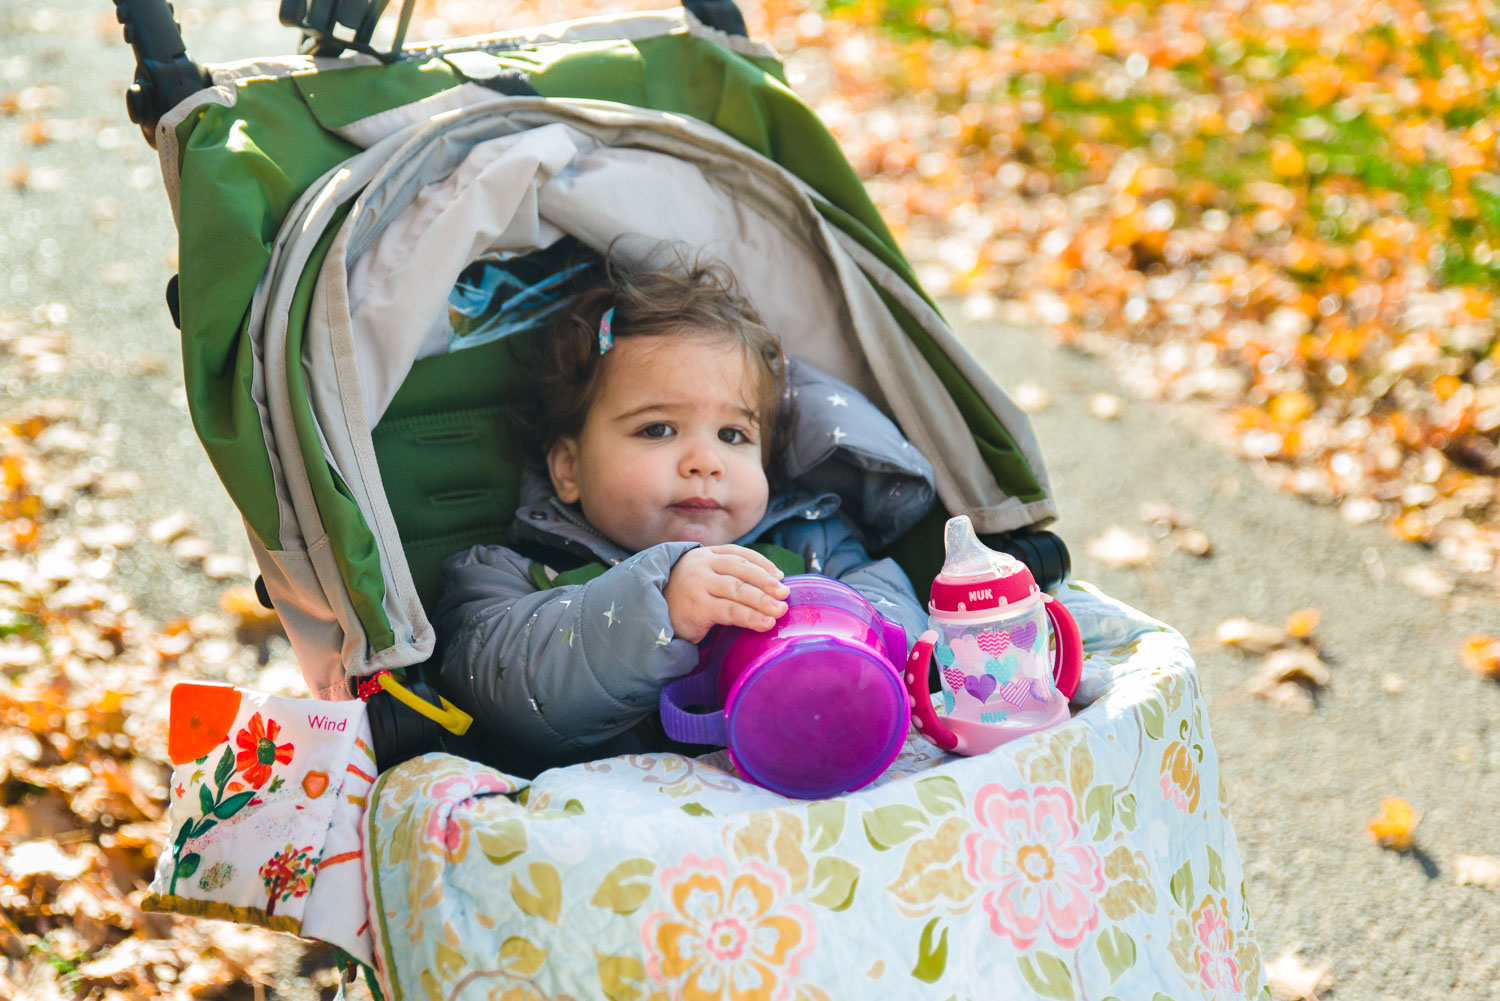 A toddler enjoying her snack while sitting in a stroller.